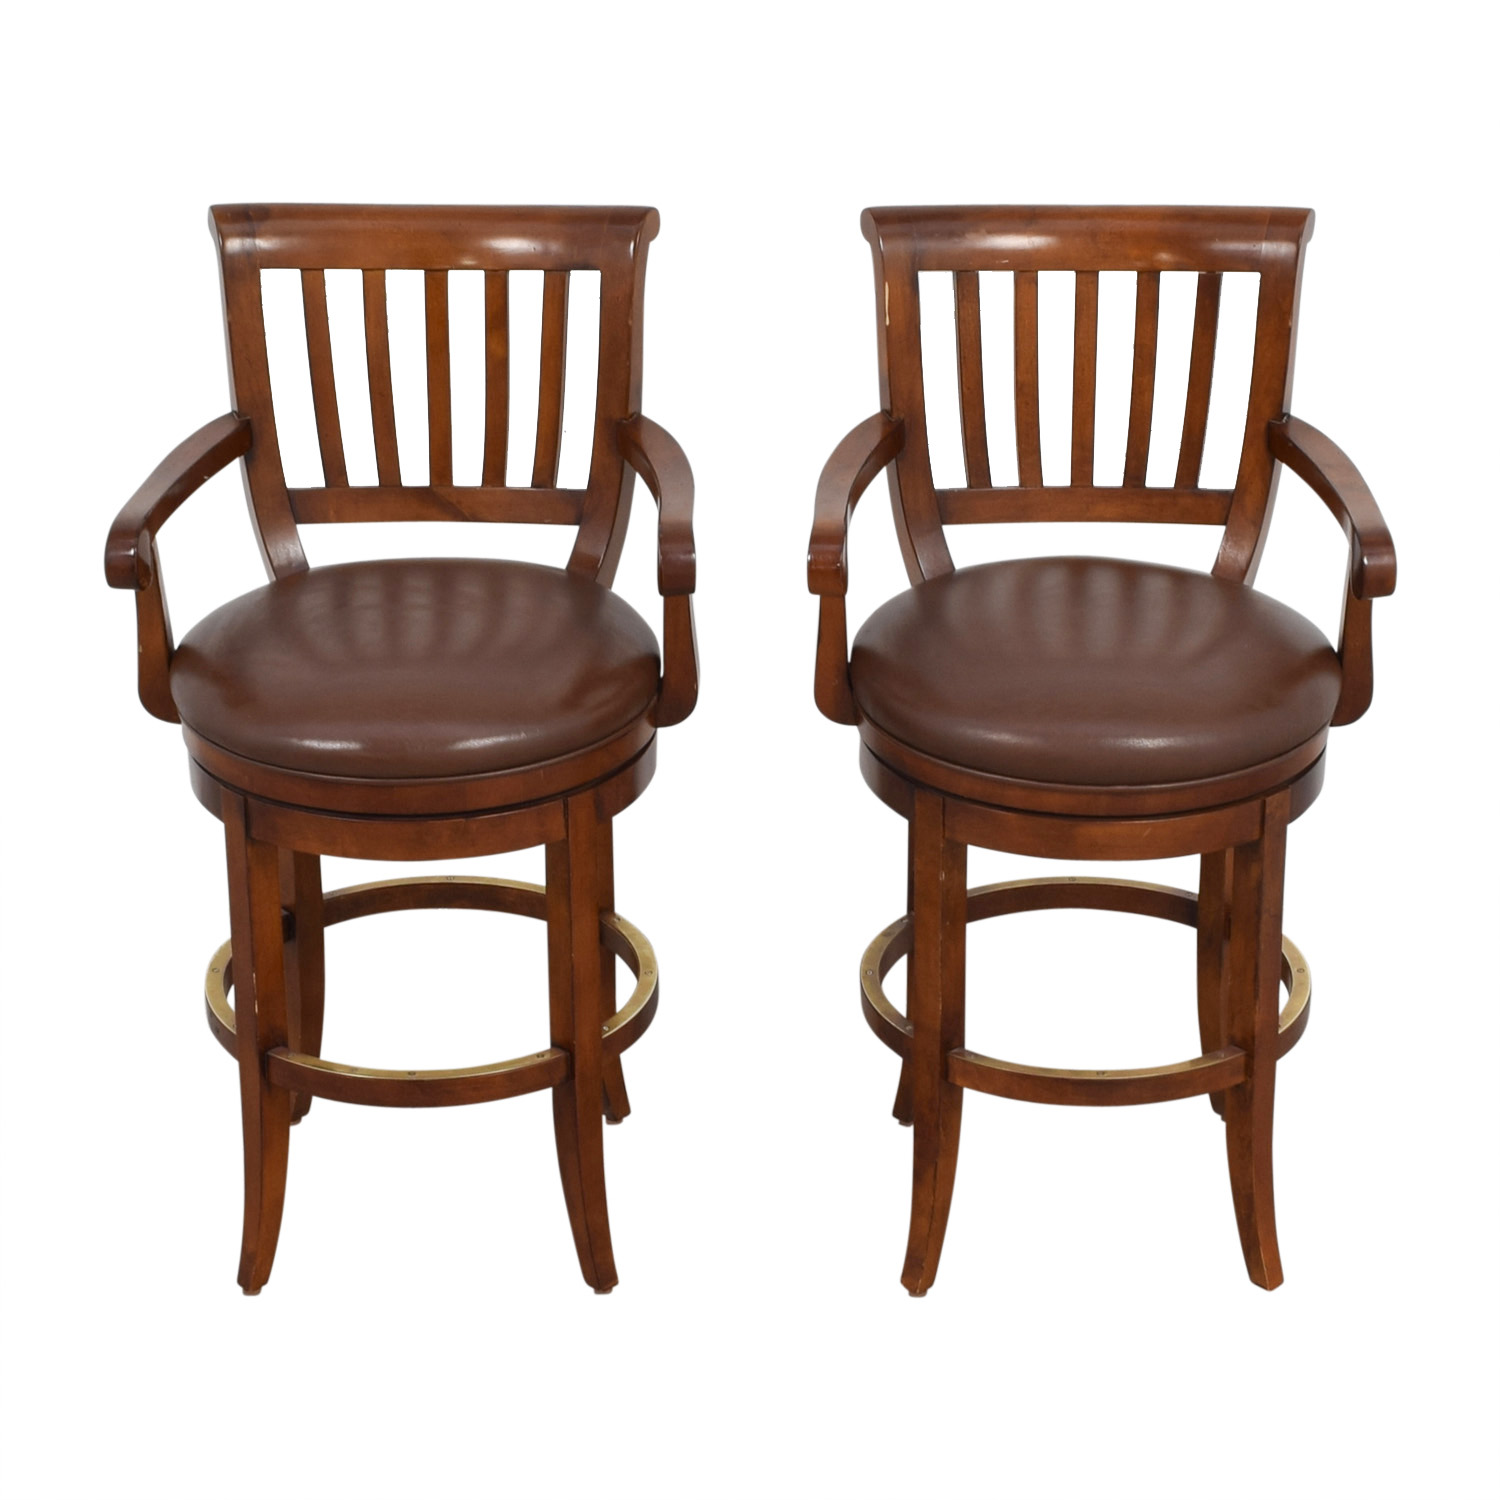 79 Off Ethan Allen Ethan Allen Brown Leather Stools